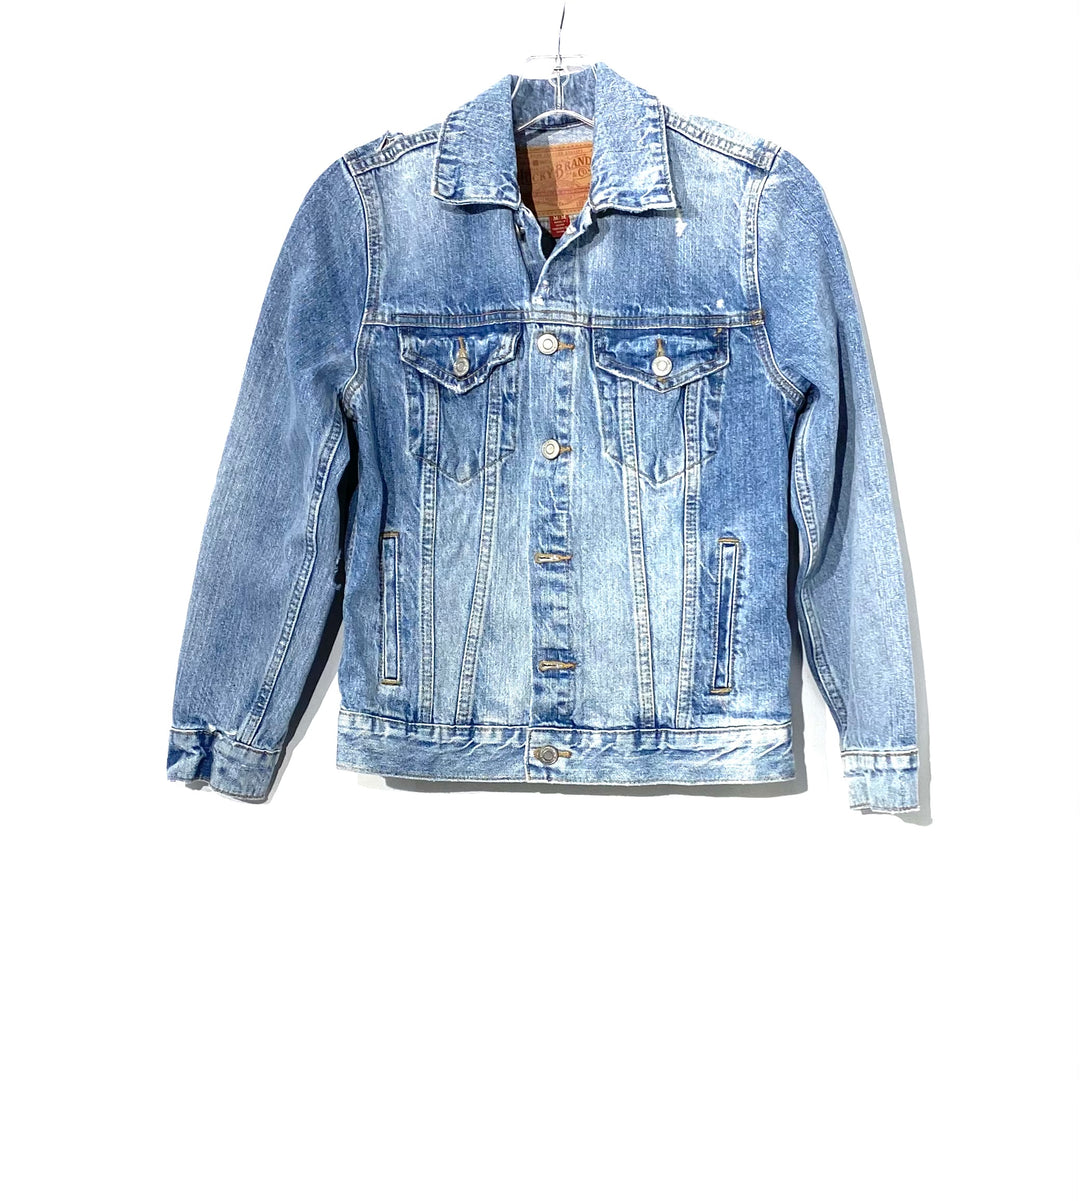 Primary Photo - <P>BRAND: LUCKY BRAND <BR>STYLE: JACKET OUTDOOR <BR>COLOR: DENIM <BR>SIZE: M <BR>SKU: 262-26275-70941<BR>DISTRESSED STYLE</P> <P>NEW WITH TAG</P>